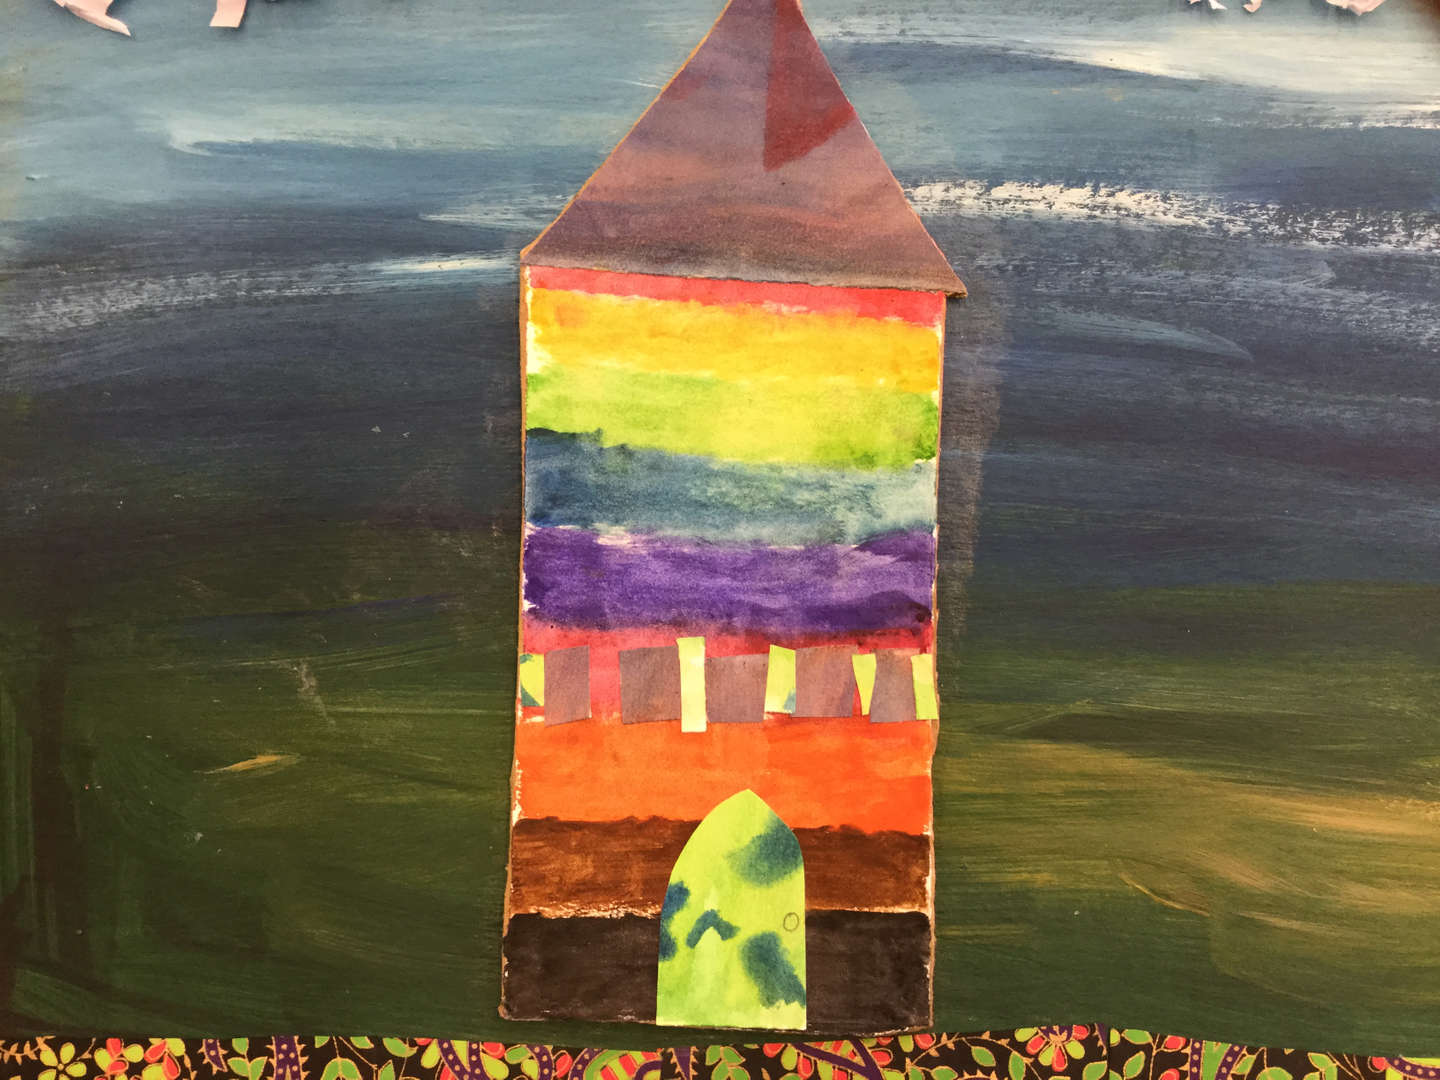 Student collage of a rainbow building